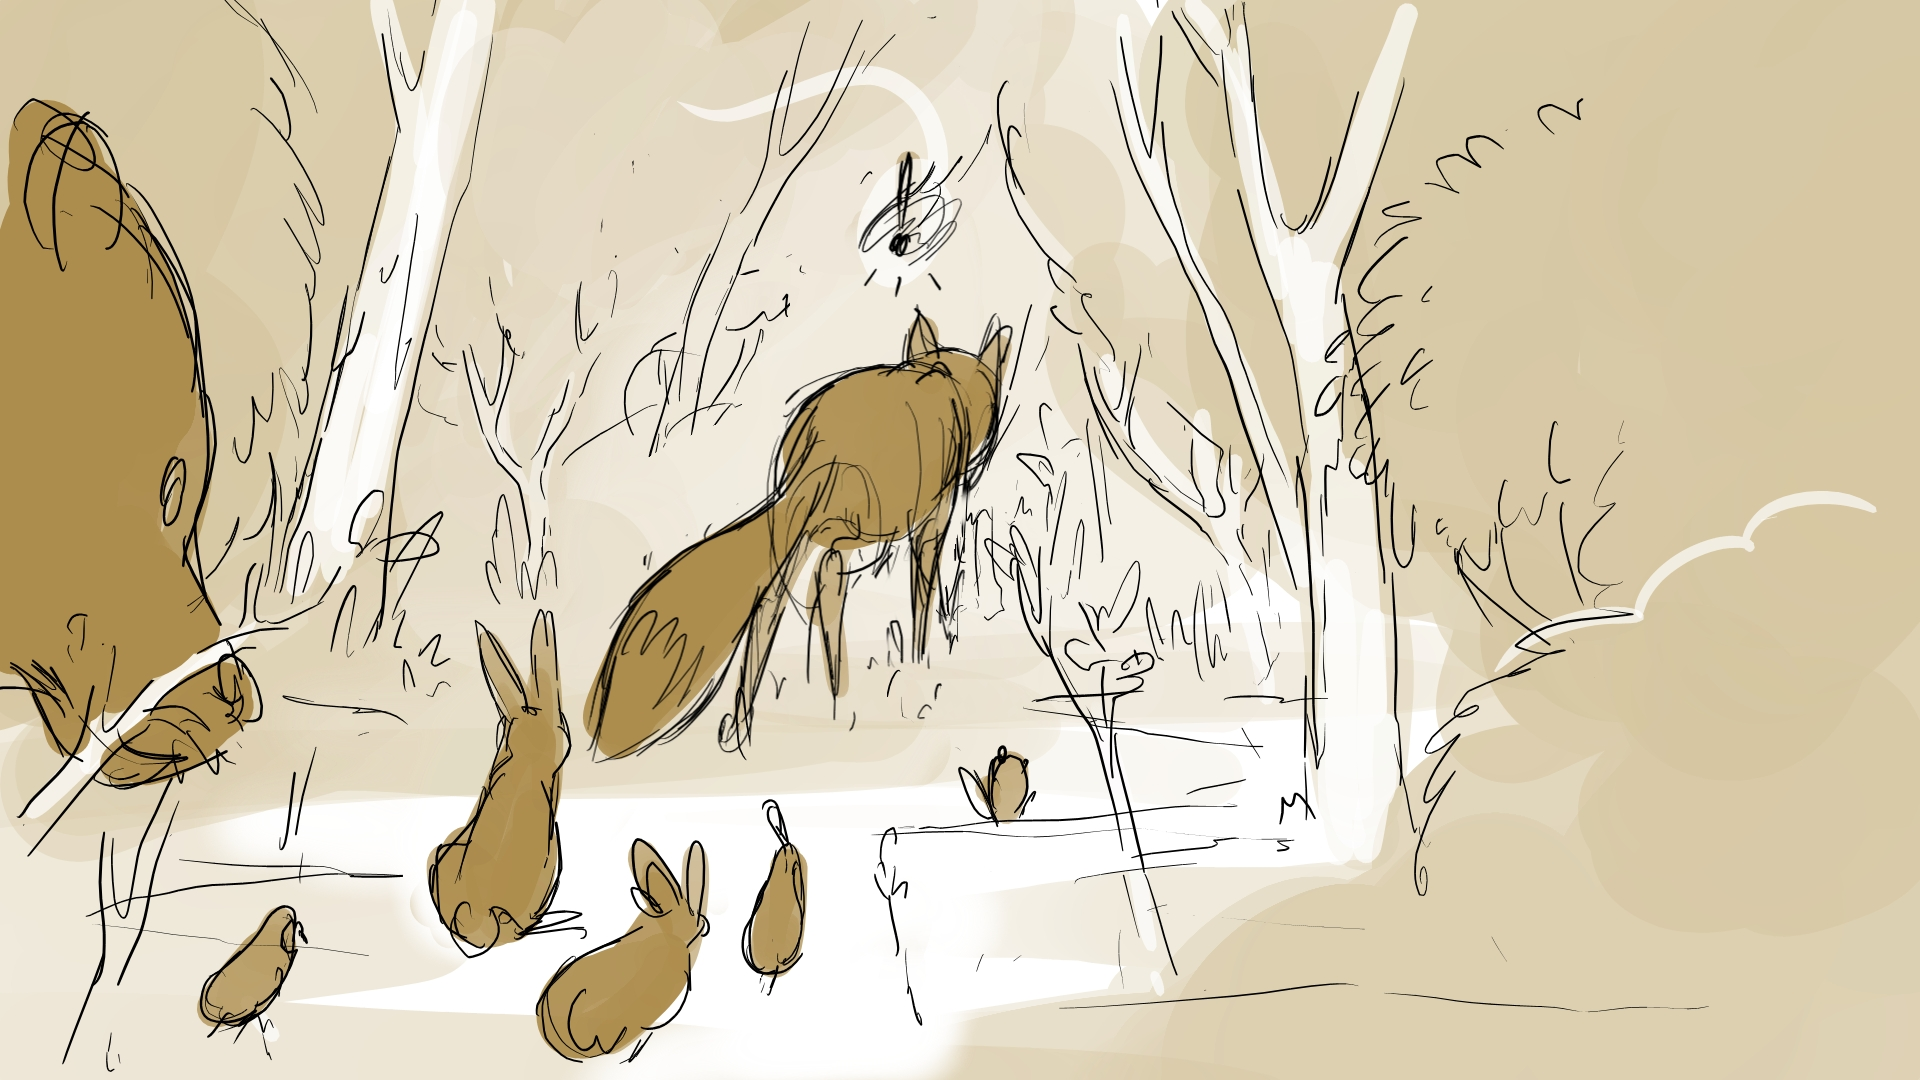 into the brush